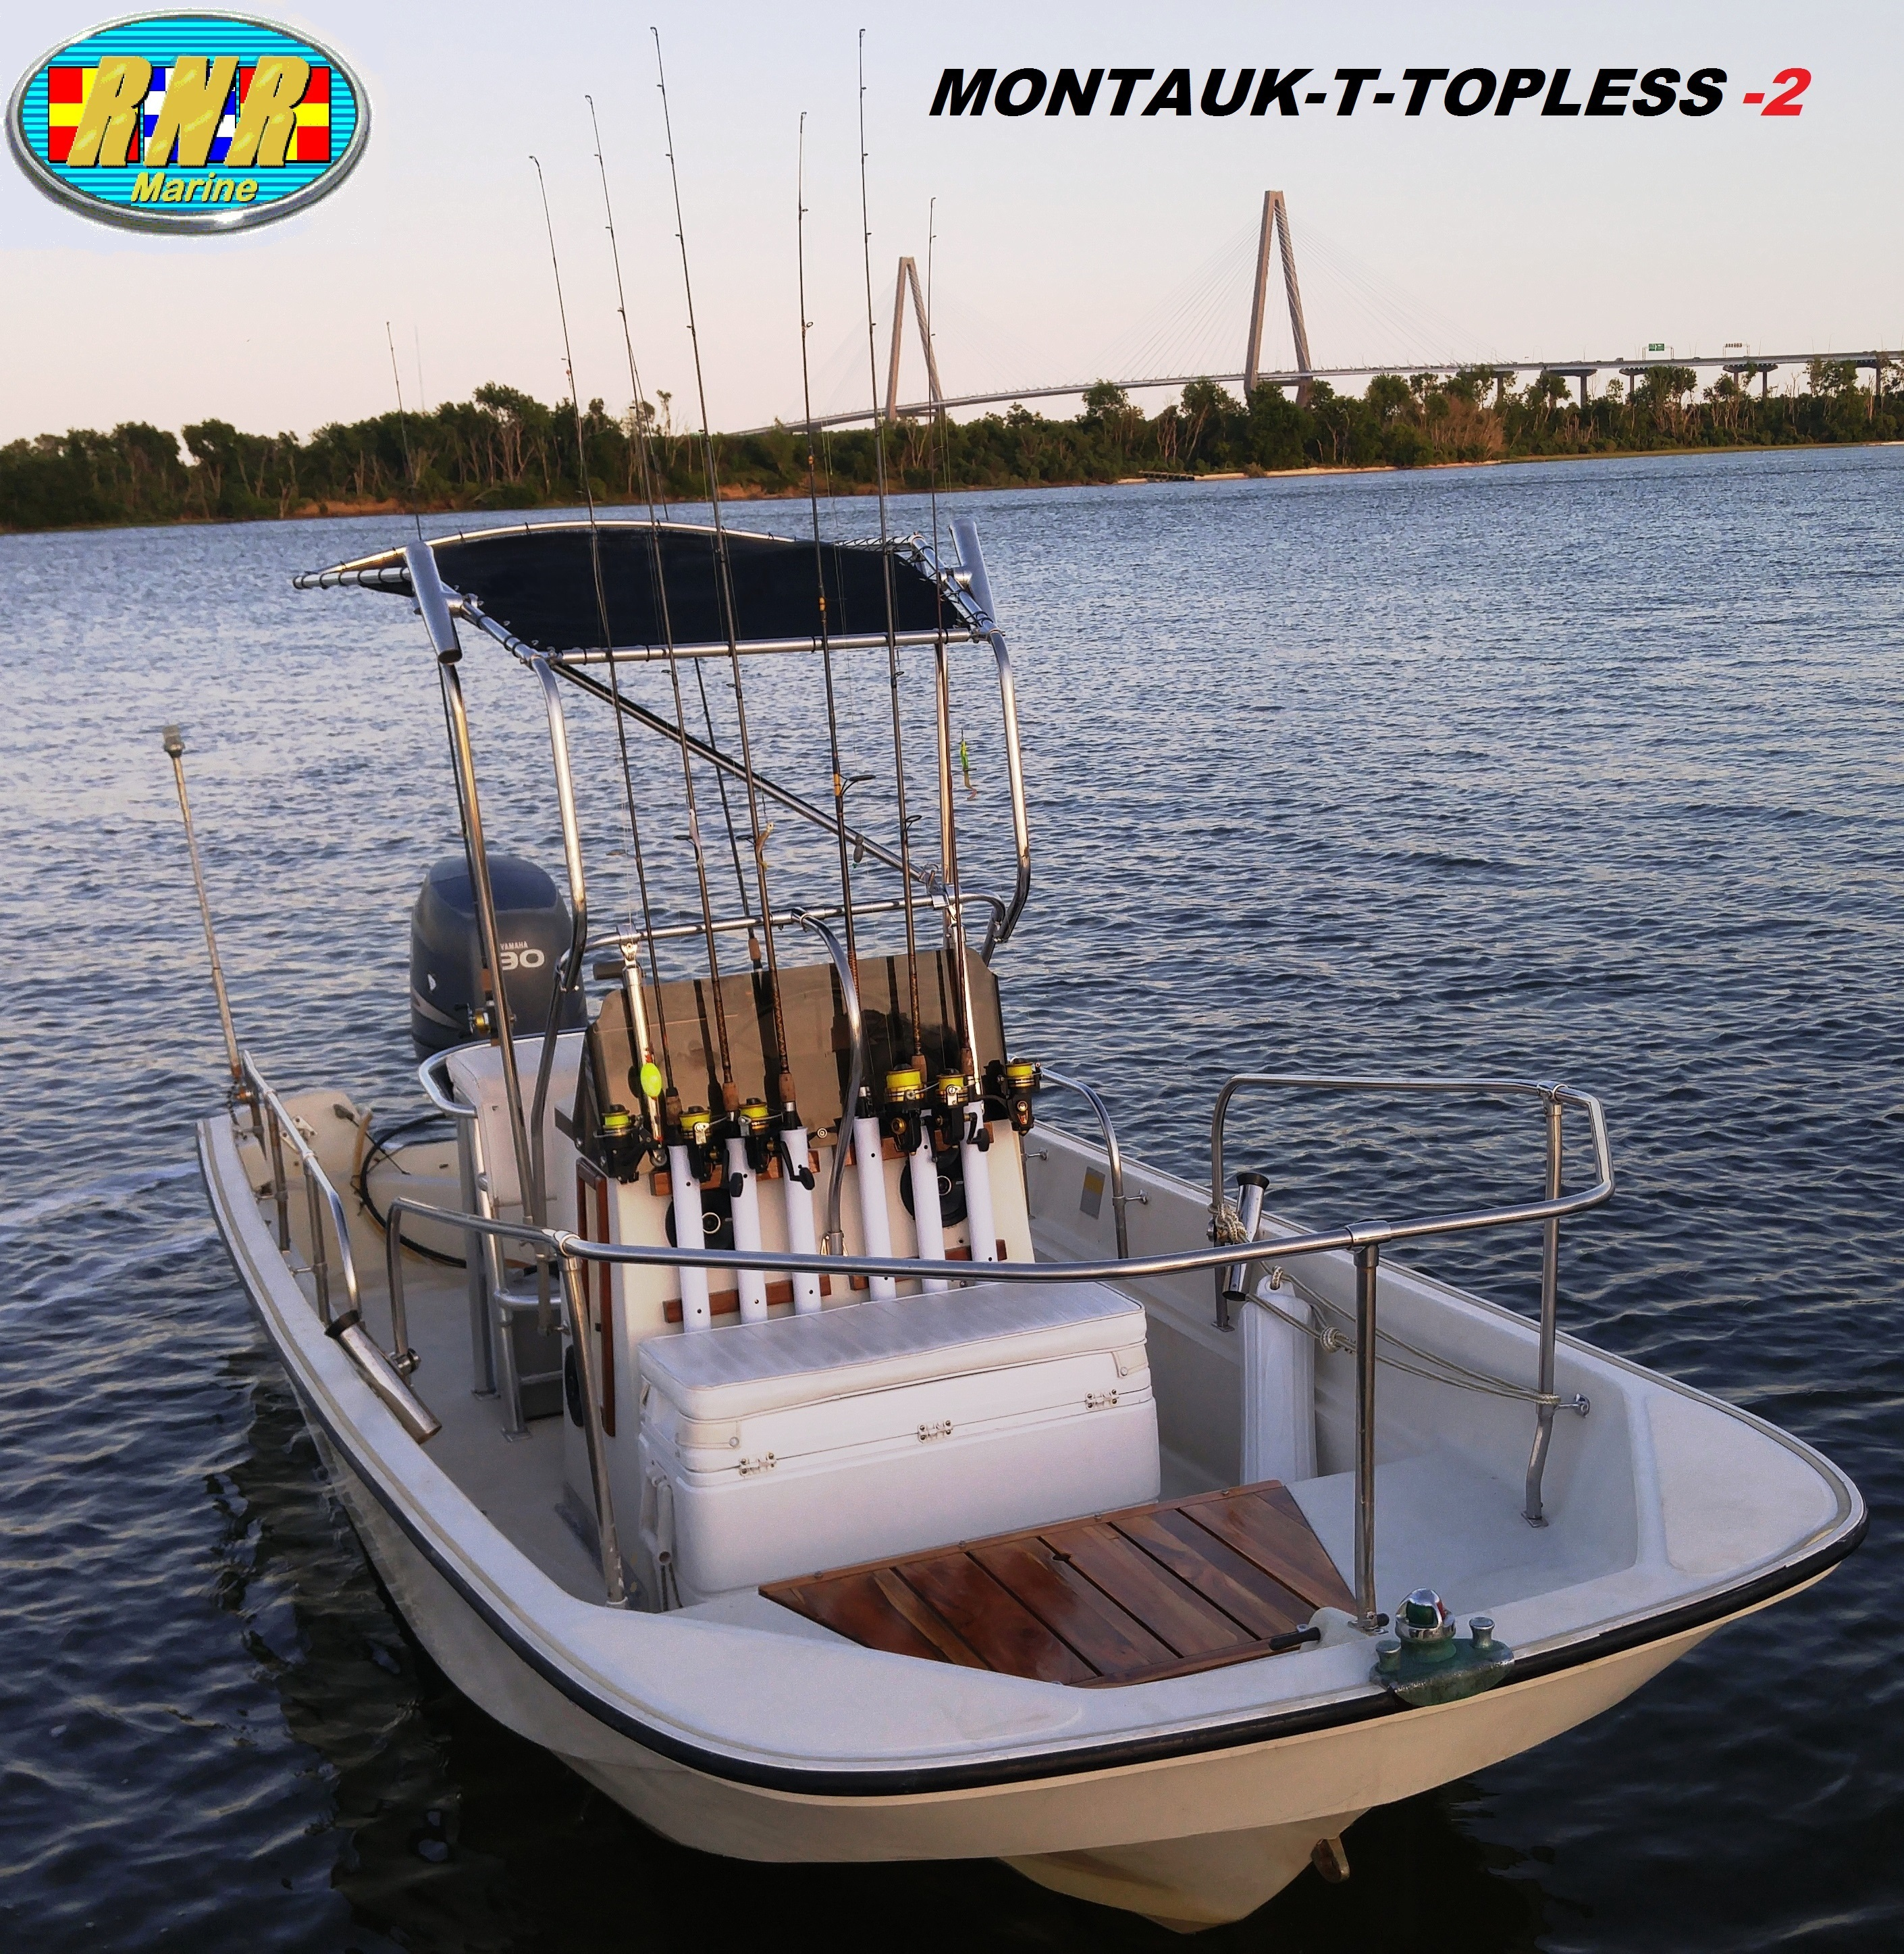 Montauk T Topless (MT2) on the water Cooper River Bridge, starboard front